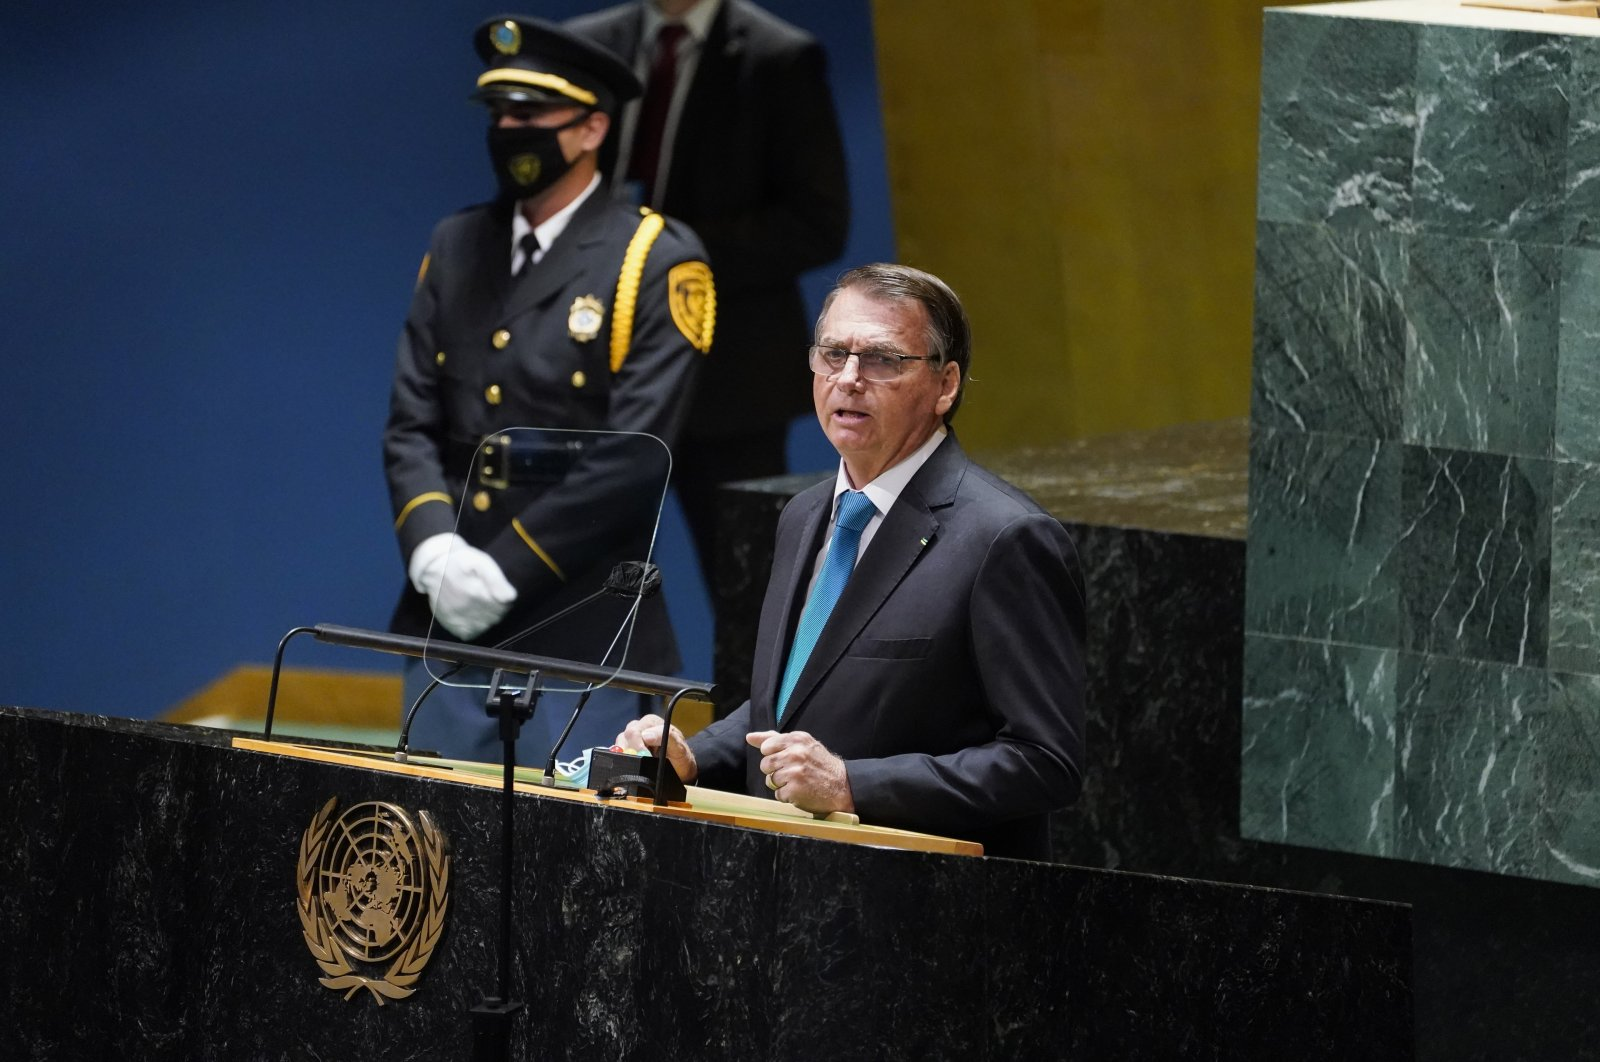 Brazil's President Jair Bolsonaro addresses the 76th Session of the U.N. General Assembly, Tuesday, Sept. 21, 2021, at United Nations headquarters in New York. (AP Photo)